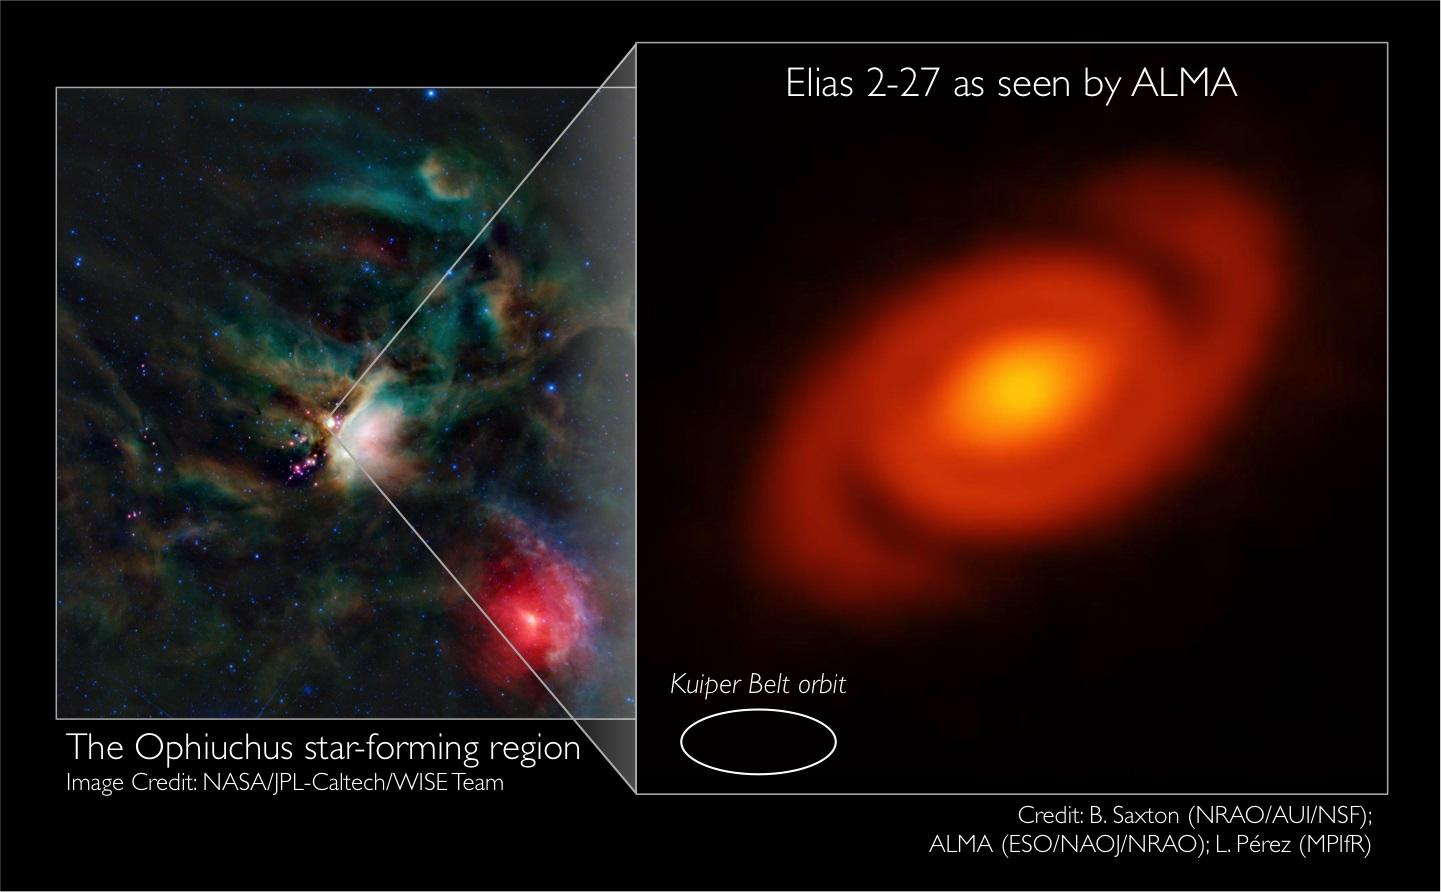 How Do Planets Form? New Images Of Baby Star Provide Insight